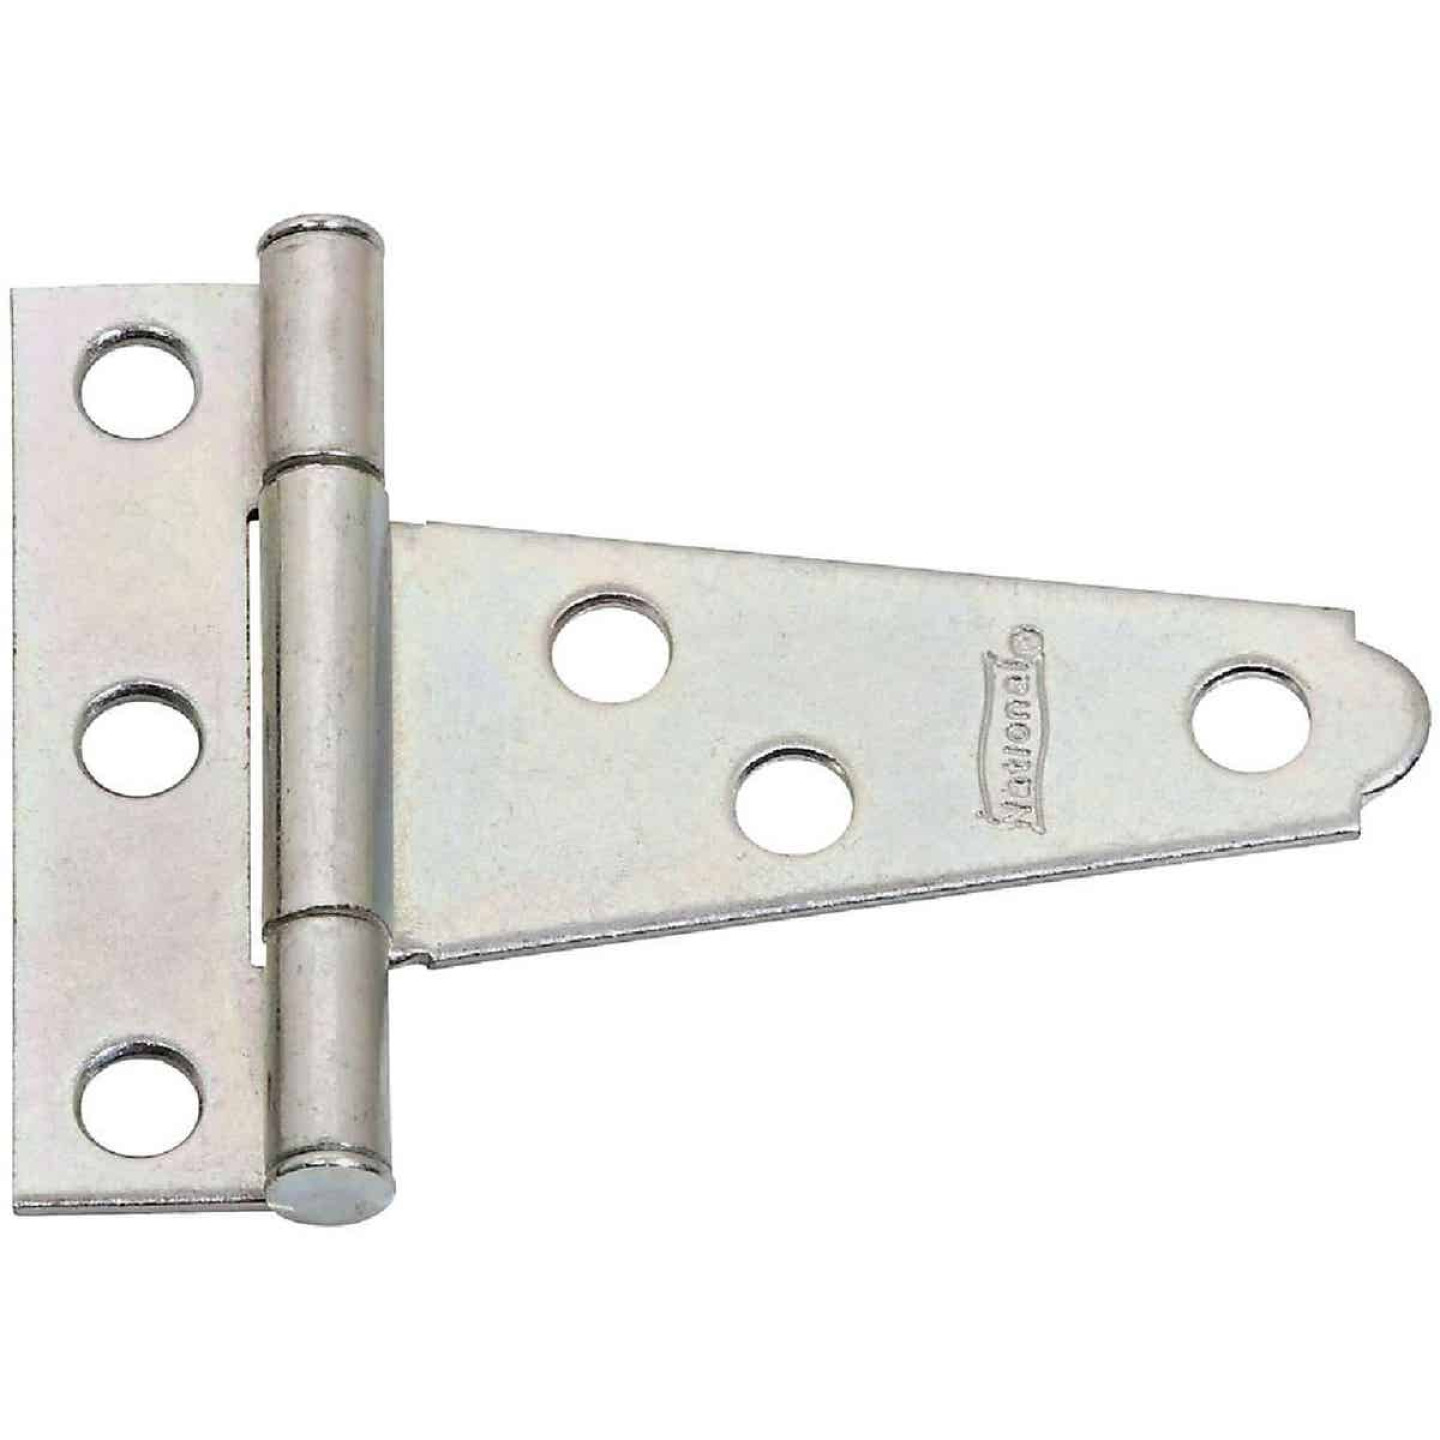 National 2 In. Light Duty T-Hinge Image 1